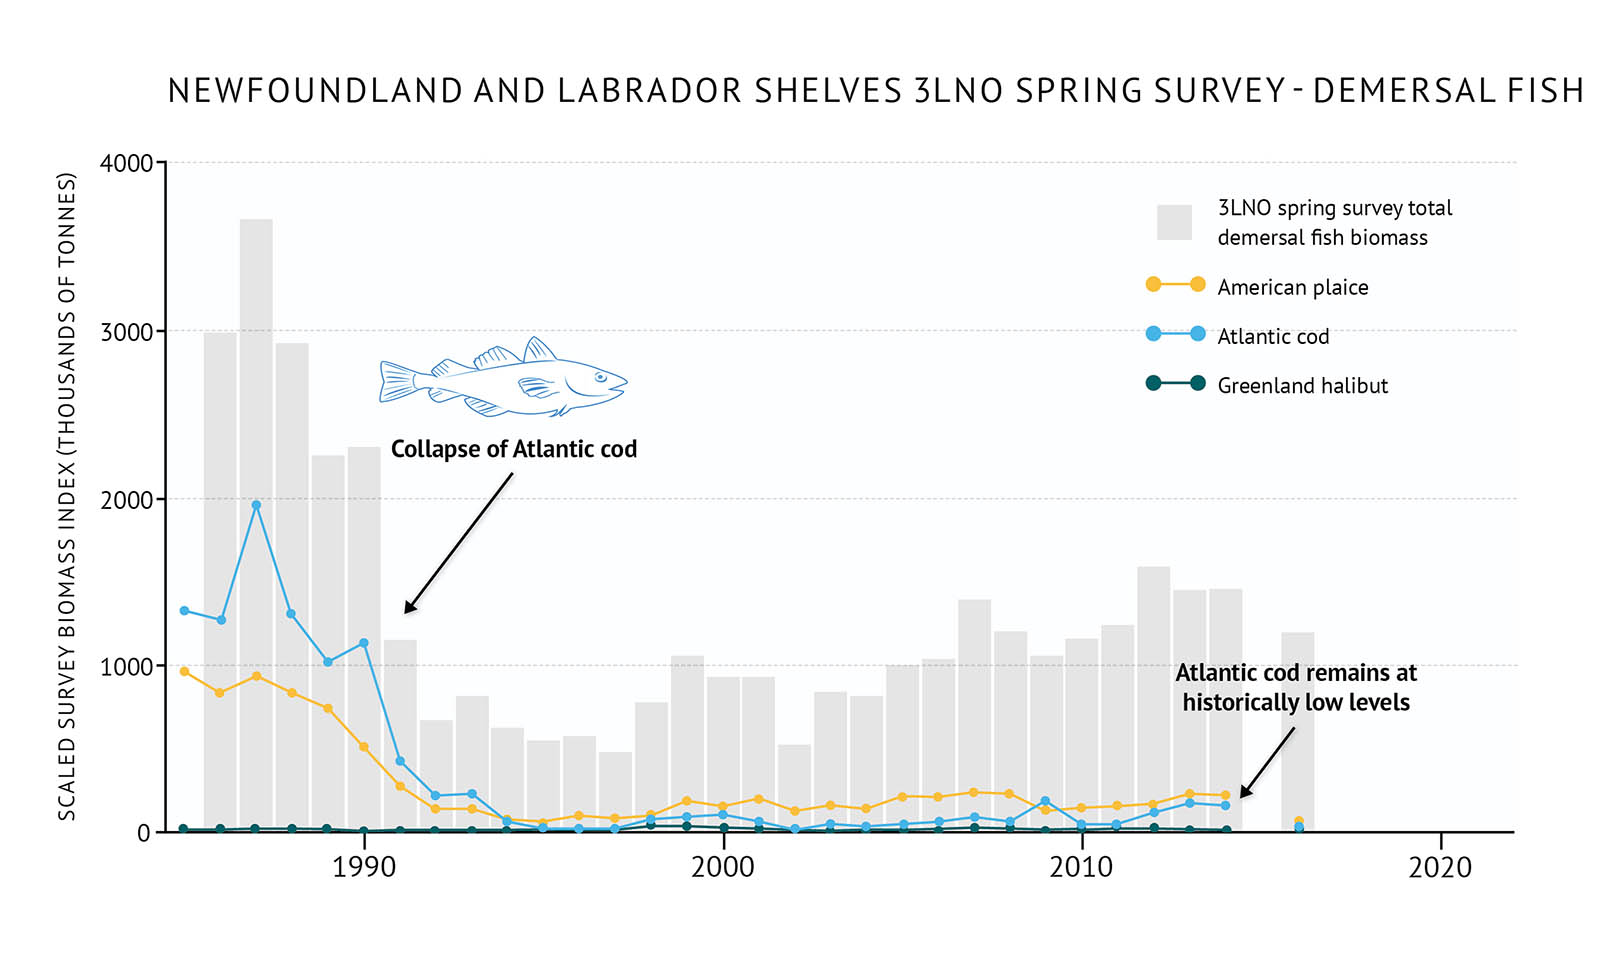 "Figure 34: Spring survey biomass of demersal fish species in 3LNO on the Newfoundland and Labrador Shelves along with individual demersal species biomass. A bar and line graph illustrates the spring survey biomass for demersal fish as well as individual species for the 3LNO NAFO zone of the Newfoundland and Labrador Shelves. Text above the graph says ""Newfoundland and Labrador Shelves 3LNO Spring Survey – Demersal Fish"". The vertical axis on the left shows the scaled survey biomass index in units of thousands of tonnes from 0 to 4000 in increments of 1000. The bottom horizontal axis shows the years between 1985 and 2020 in 10 year increments. The biomass for total demersal fish in the spring 3LNO survey is represented by grey vertical bars. The data extends from 1985 to 2016, but there is no data for 2015. The total survey biomass fluctuates between approximately 3000 and 5500 thousand tonnes in the early 1980s and then declines to approximately 250 thousand tonnes by 1992. It remains below approximately 500 thousand tonnes until the mid-2000s when it starts to increase to 2010 and reaches approximately 1000 thousand tonnes. The fall survey biomass for three demersal fish species is represented by different coloured lines on the same graph. A yellow data line illustrates the survey biomass trend for American plaice. A light blue data line illustrates the survey biomass trend for American cod. A dark green data line illustrates the survey biomass trend for Greenland halibut. Atlantic cod biomass is the highest of the species in the 1980s ranging between 1000 and 2000 thousand tonnes, but it decreases rapidly less than 100 thousand tonnes in the early 1990s and remains low. The biomass of American plaice is near 1000 thousand tonnes in the 1980s, but decreases rapidly in the late 1980s and early 1990s. It then remains generally between 100-200 thousand tonnes to 2016. Greenland halibut has the lowest biomass of the three species and is less than 50 thousand tonnes with small fluctuations from the 1980s to 2016. A small, light blue outline-drawing of an Atlantic cod is placed on the graph above the vertical bars to the left-hand side. Below the drawing there is text which states ""Collapse of northern cod stock"" and an arrow points to the vertical bars for the early 1990s time period. Another line of text is placed on the graph to the right-hand side overlapping the vertical bars which states ""Atlantic cod remains at historically low levels""."